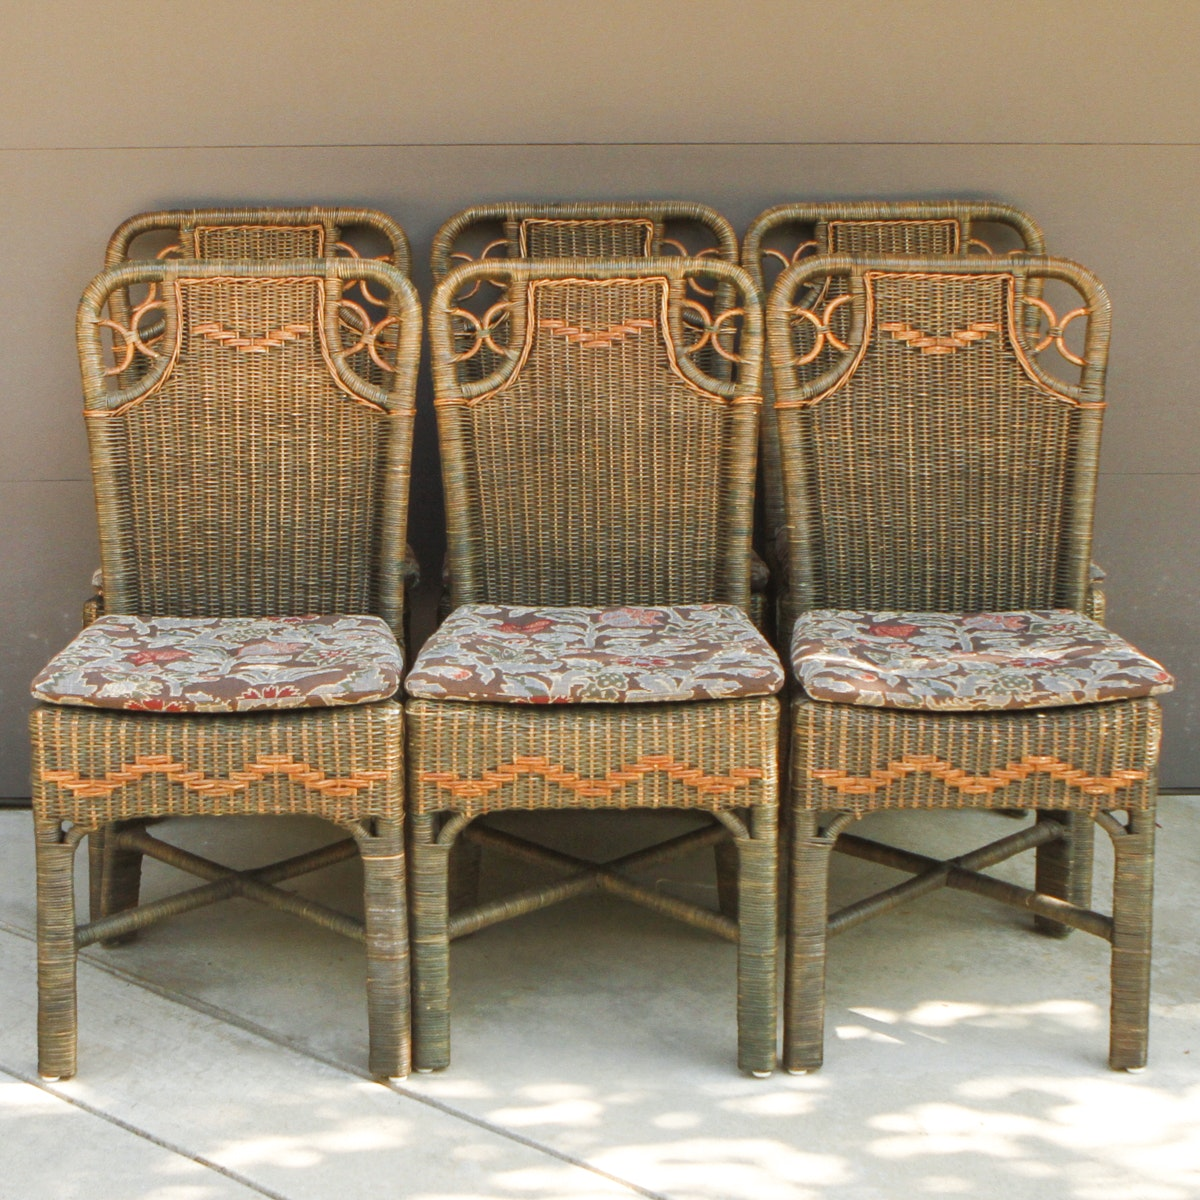 Palecek Wicker Side Chairs With Cushions ...